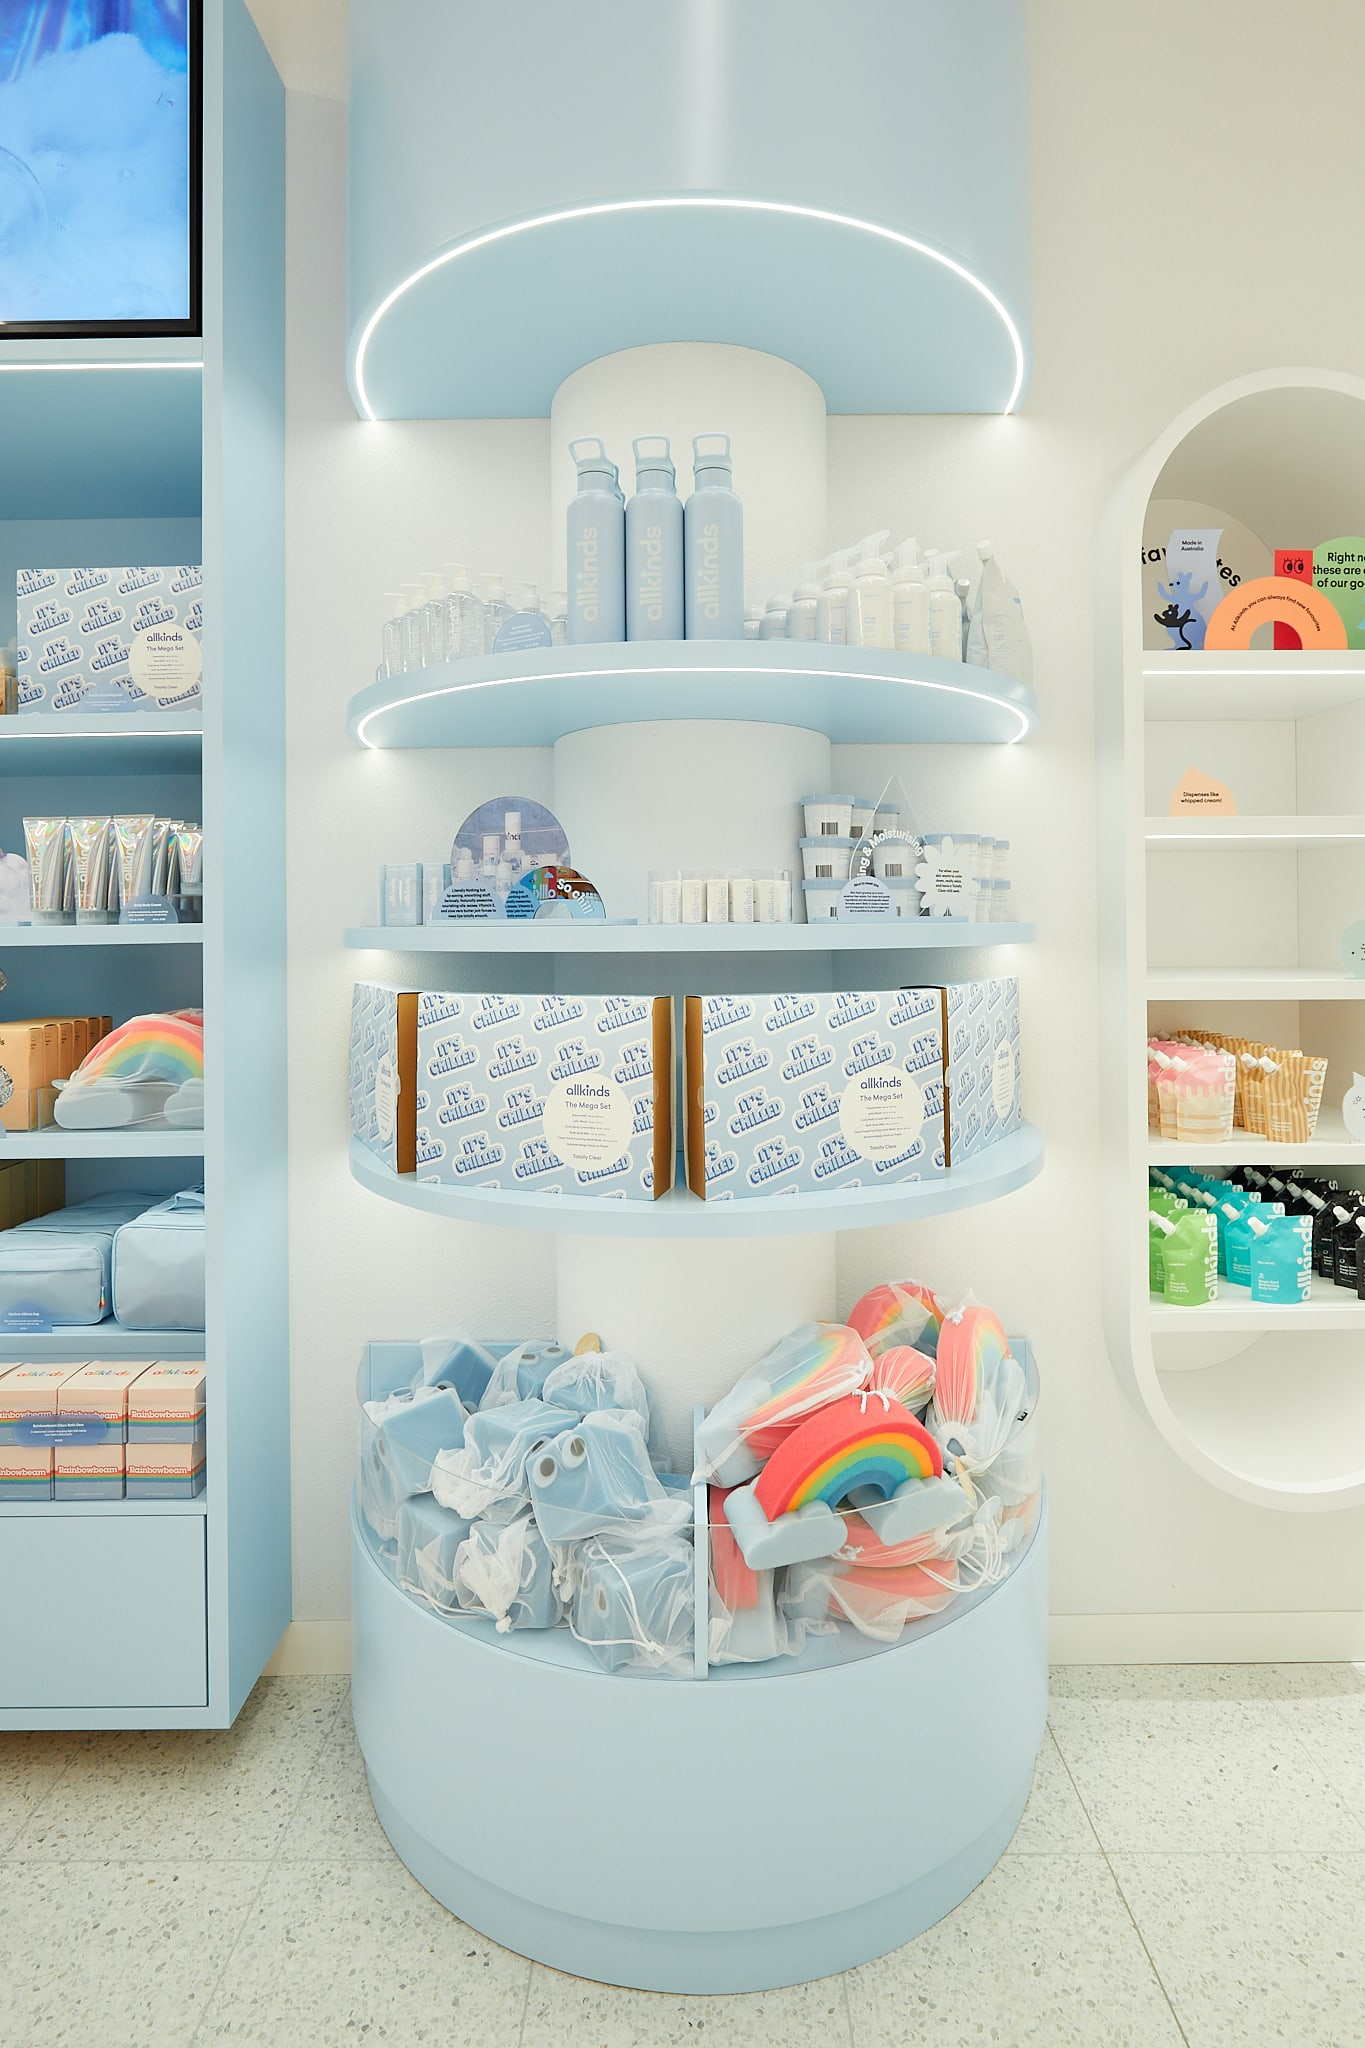 Allkinds Totally Clear world display shelves with sets